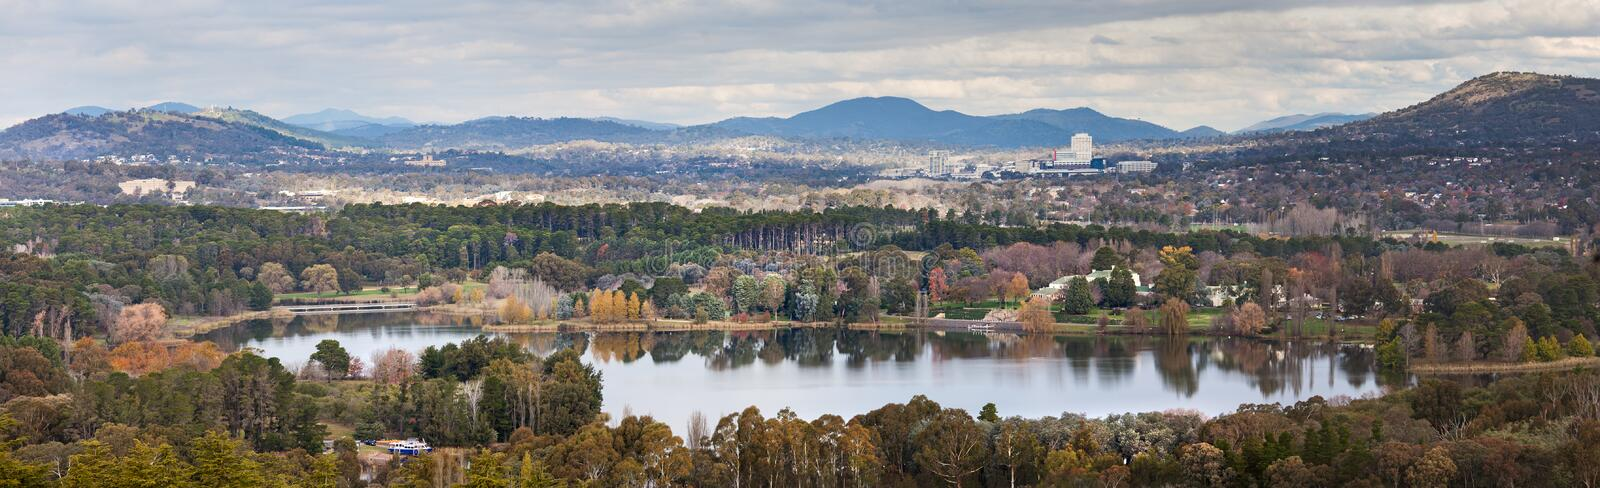 Dairy Farmers Hill Canberra stock images